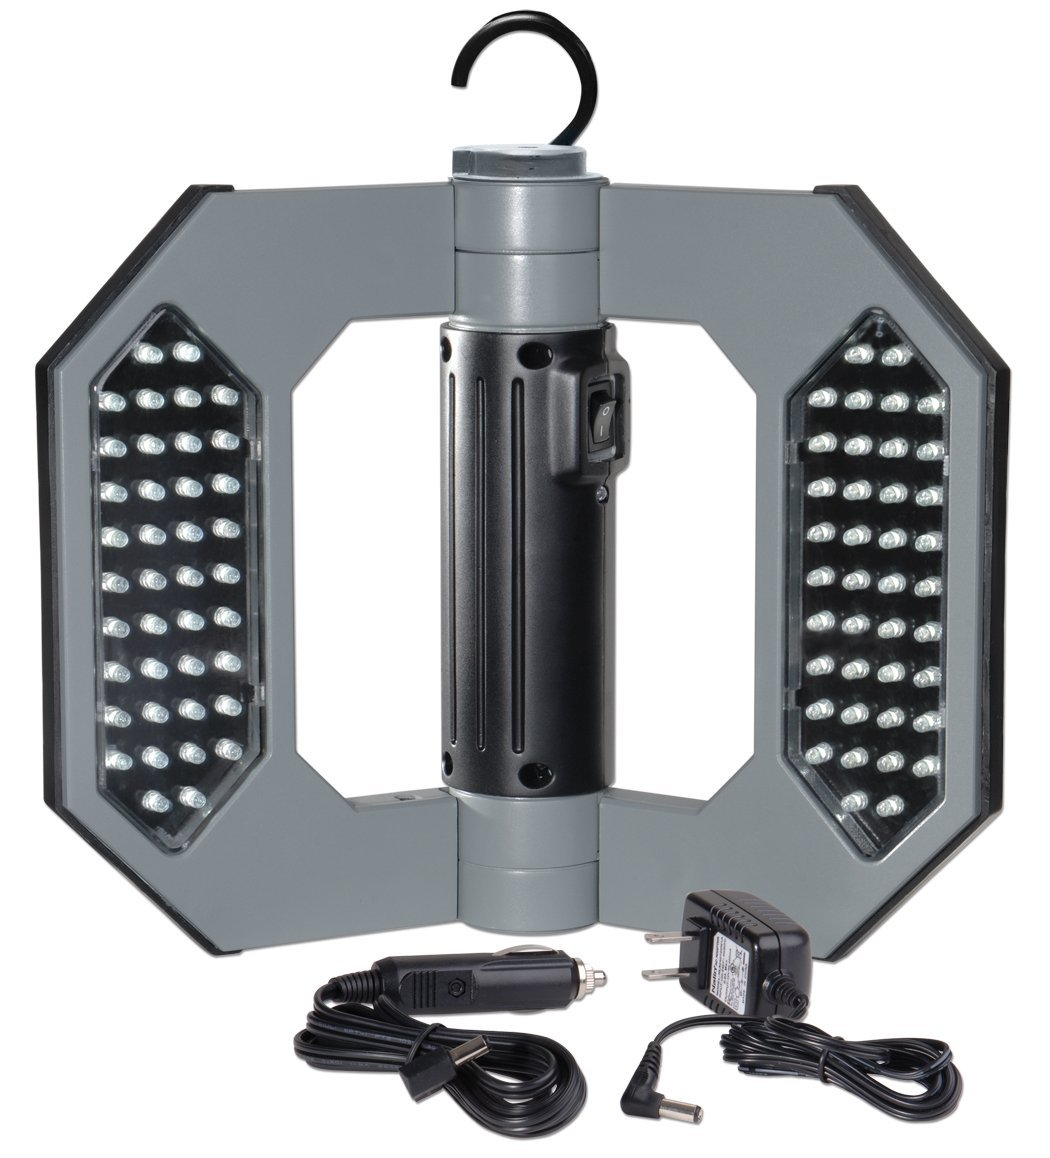 Portable 60 Leds 350lm Rechargeable Cordless Work Light: Cooper Lighting LED130 Might D Light 80 LED Cordless